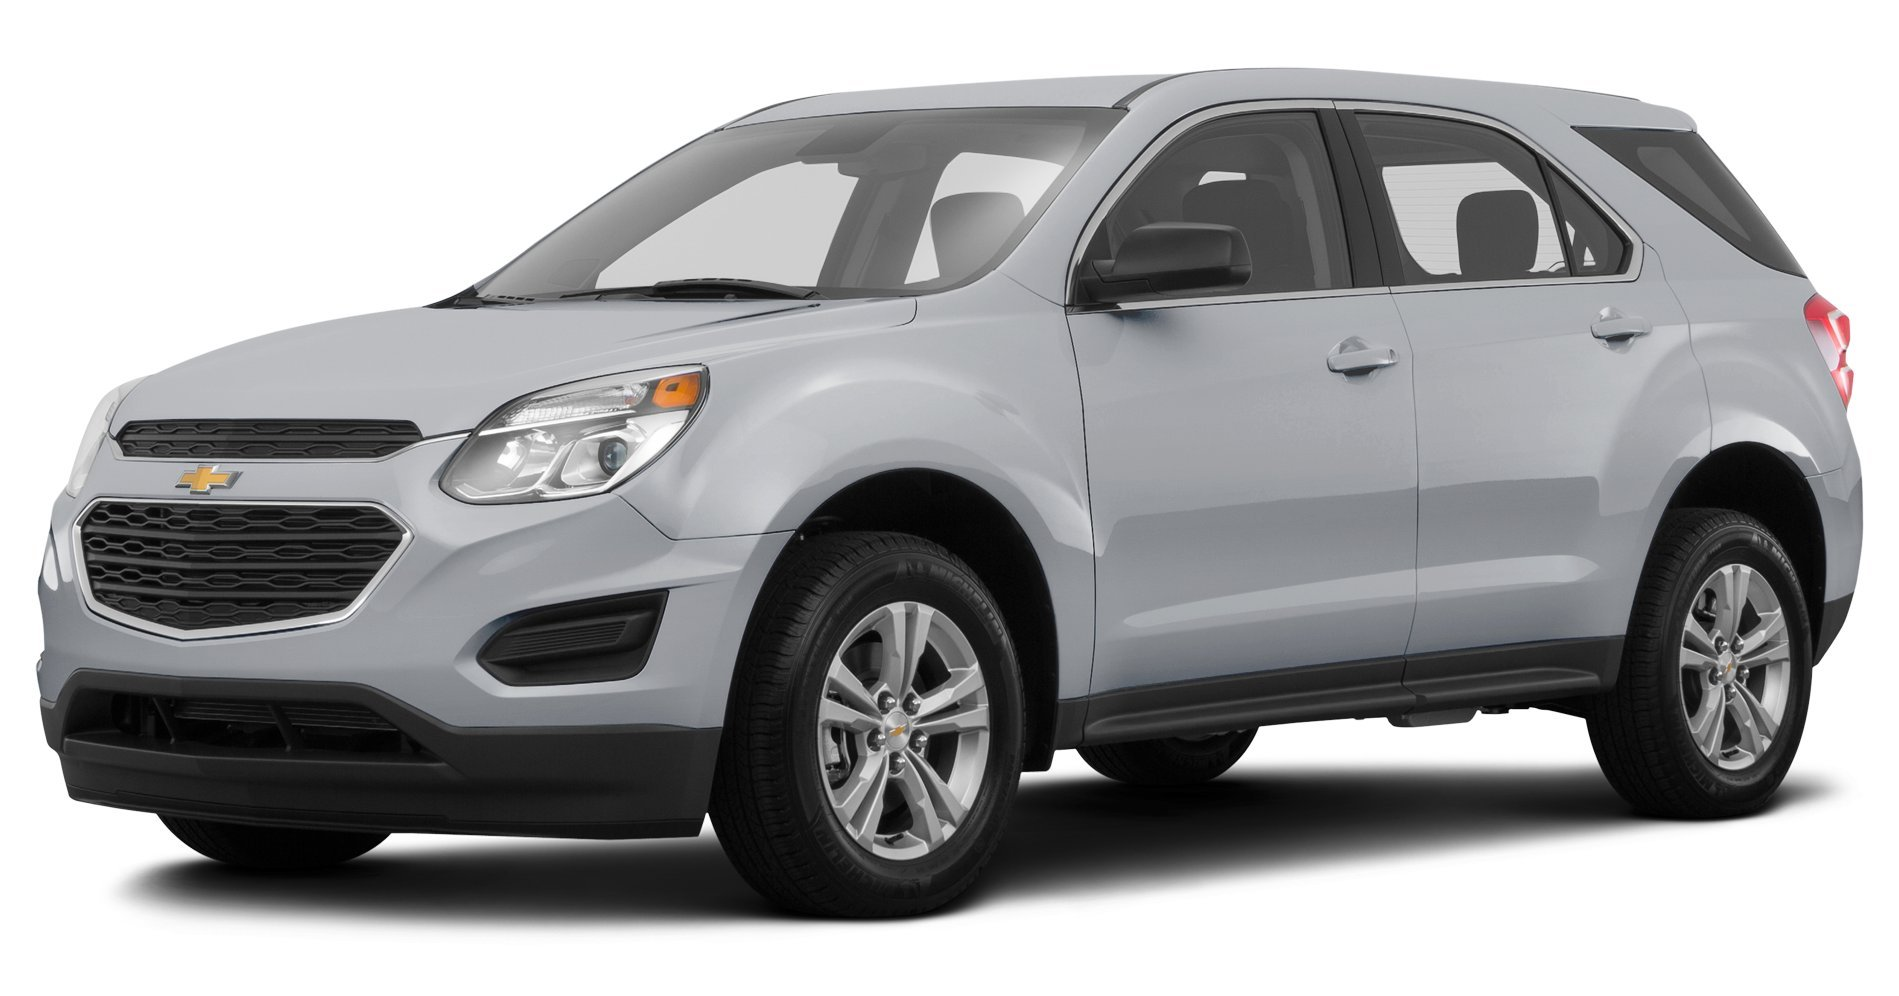 2016 chevrolet equinox reviews images and specs vehicles. Black Bedroom Furniture Sets. Home Design Ideas